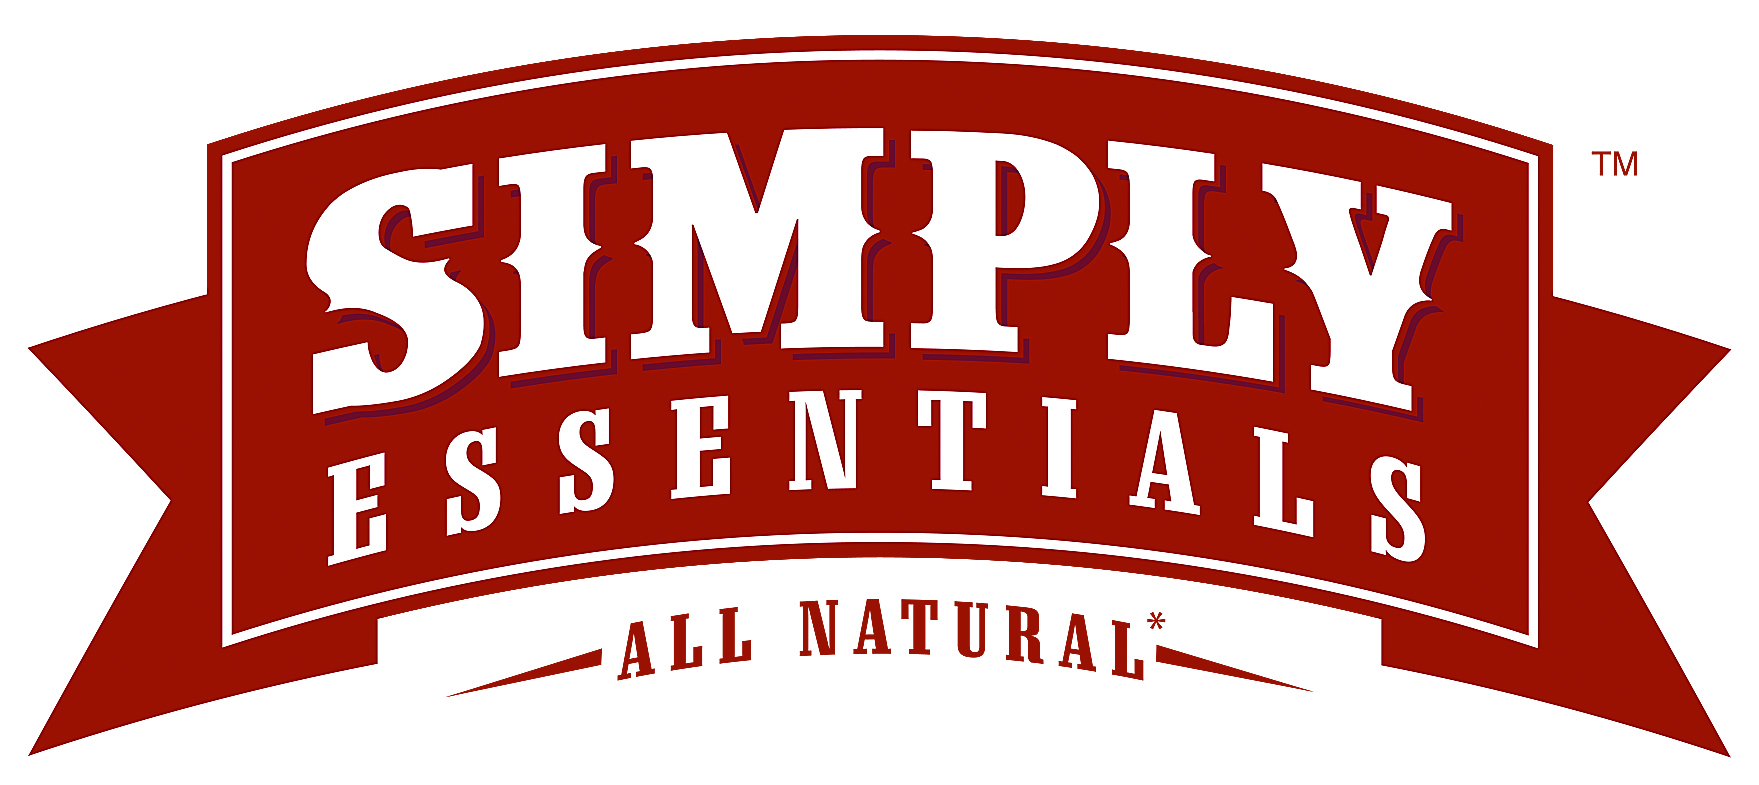 Simply Essentials sale hearing delayed until likely later this month